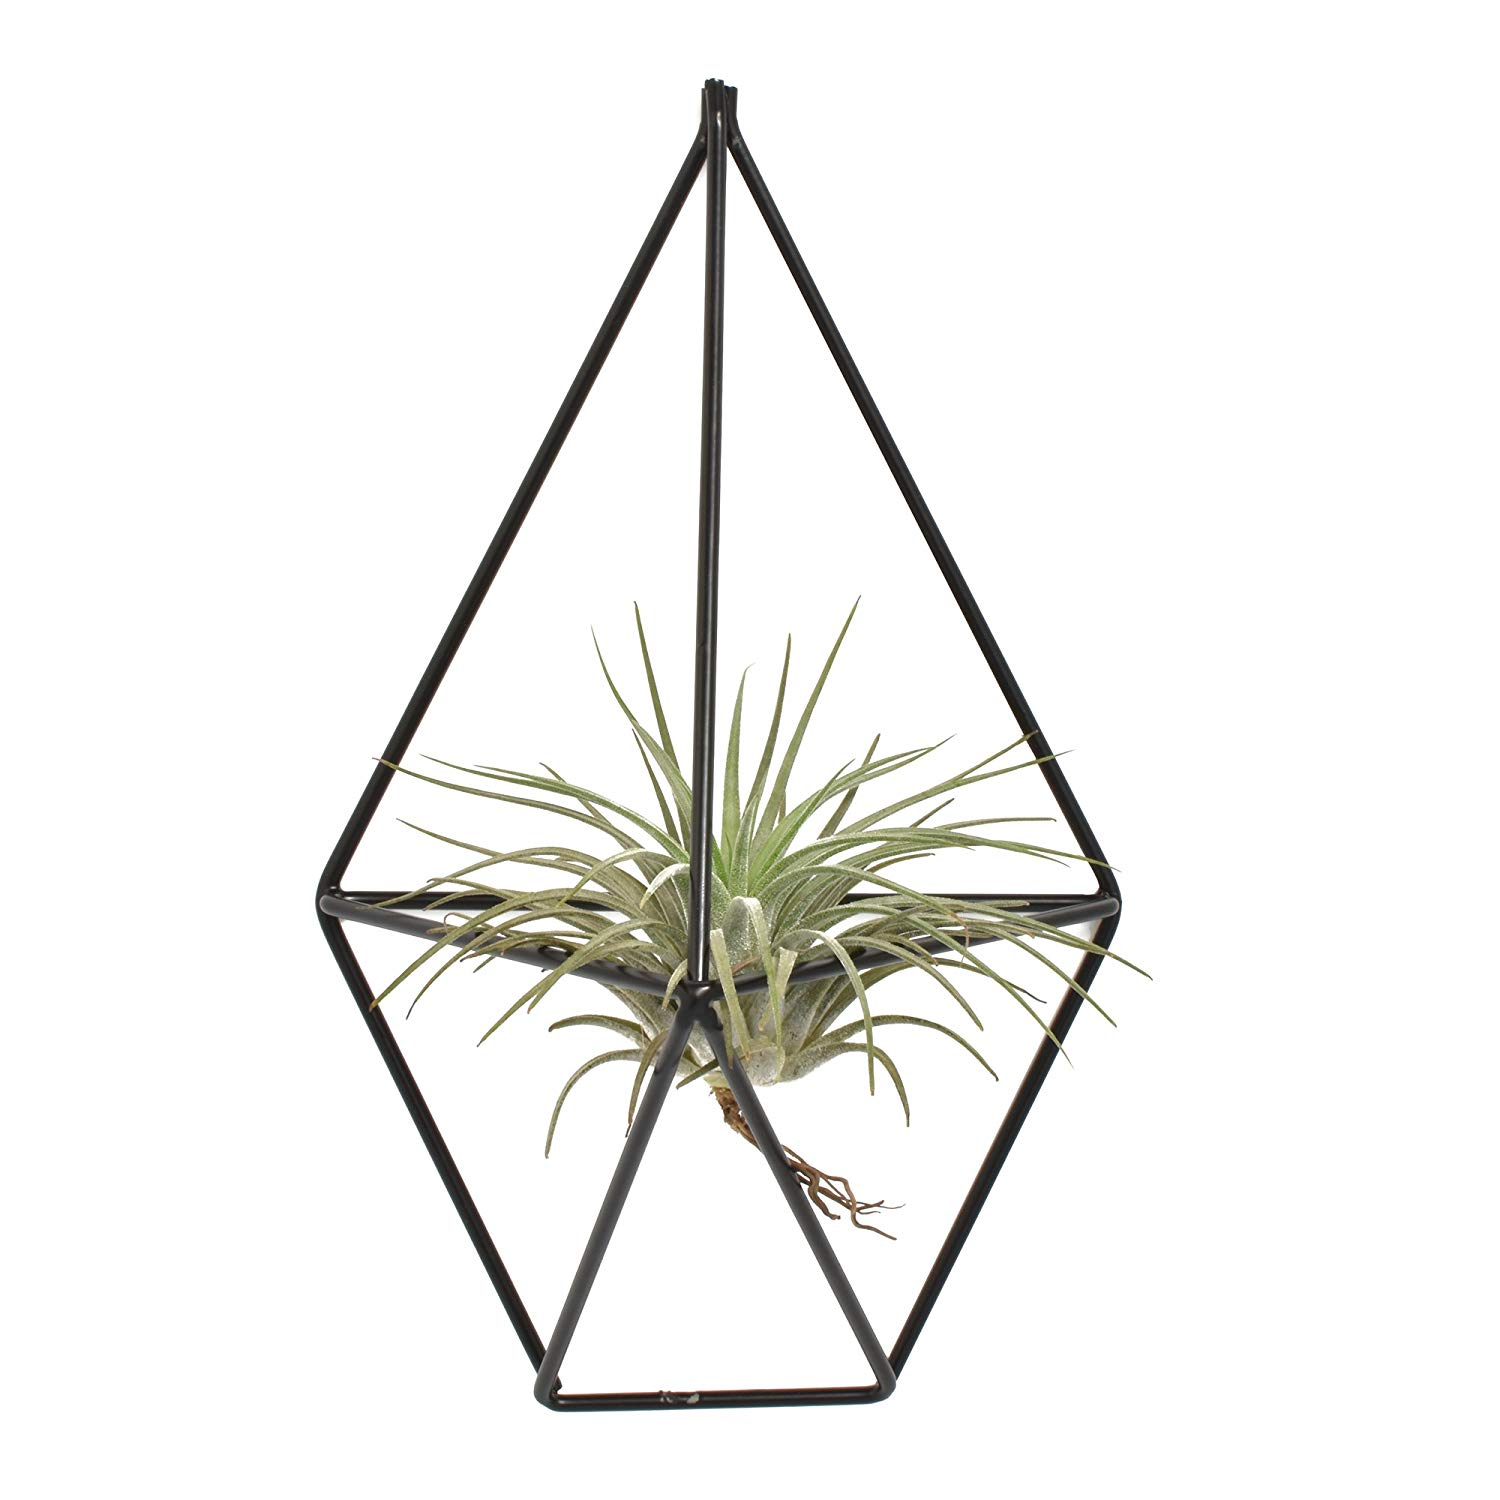 Flower & Plant Pots, Baskets & Window Boxes Wall Mounted Plants Holder Irregular Geometric Metal Hanging Rack Ornament